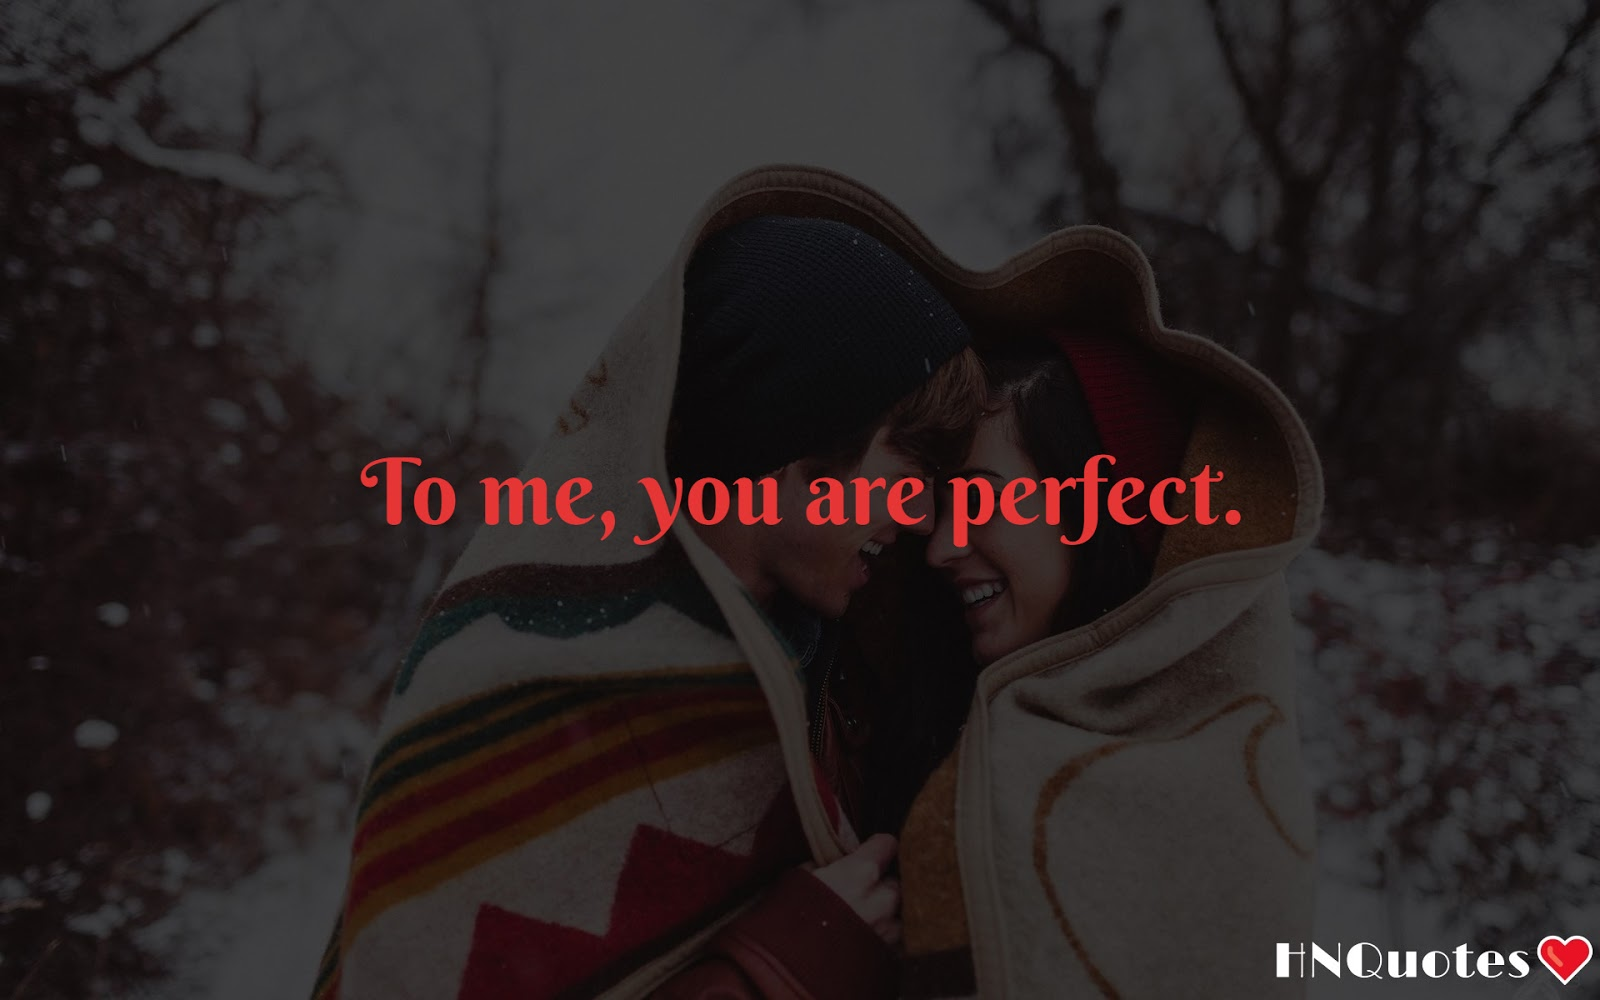 Romantic-Quotes-about-Love-Forever-I-Love-You-62-[HNQuotes]